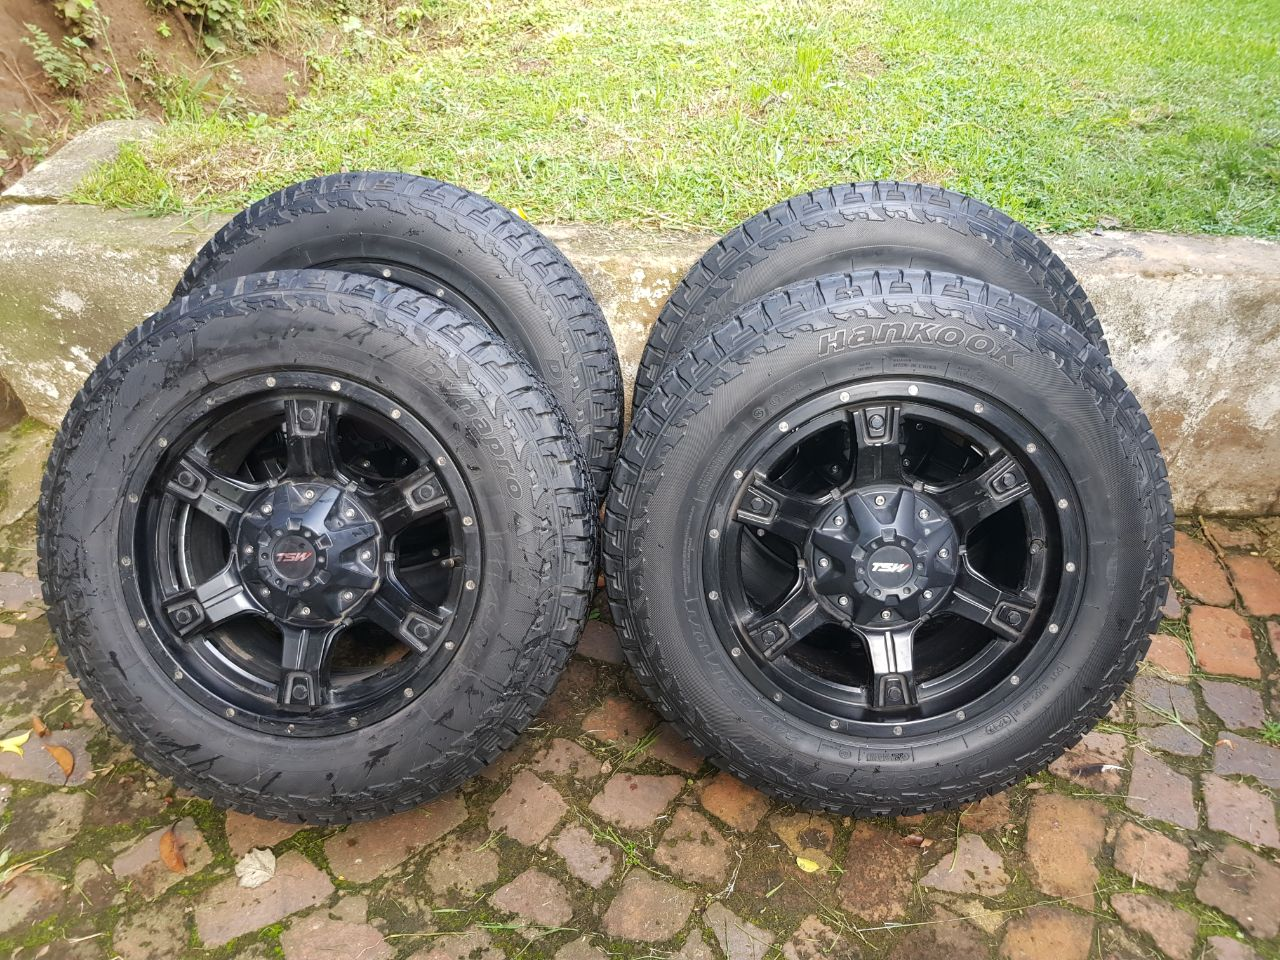 Hankook tyres and mags